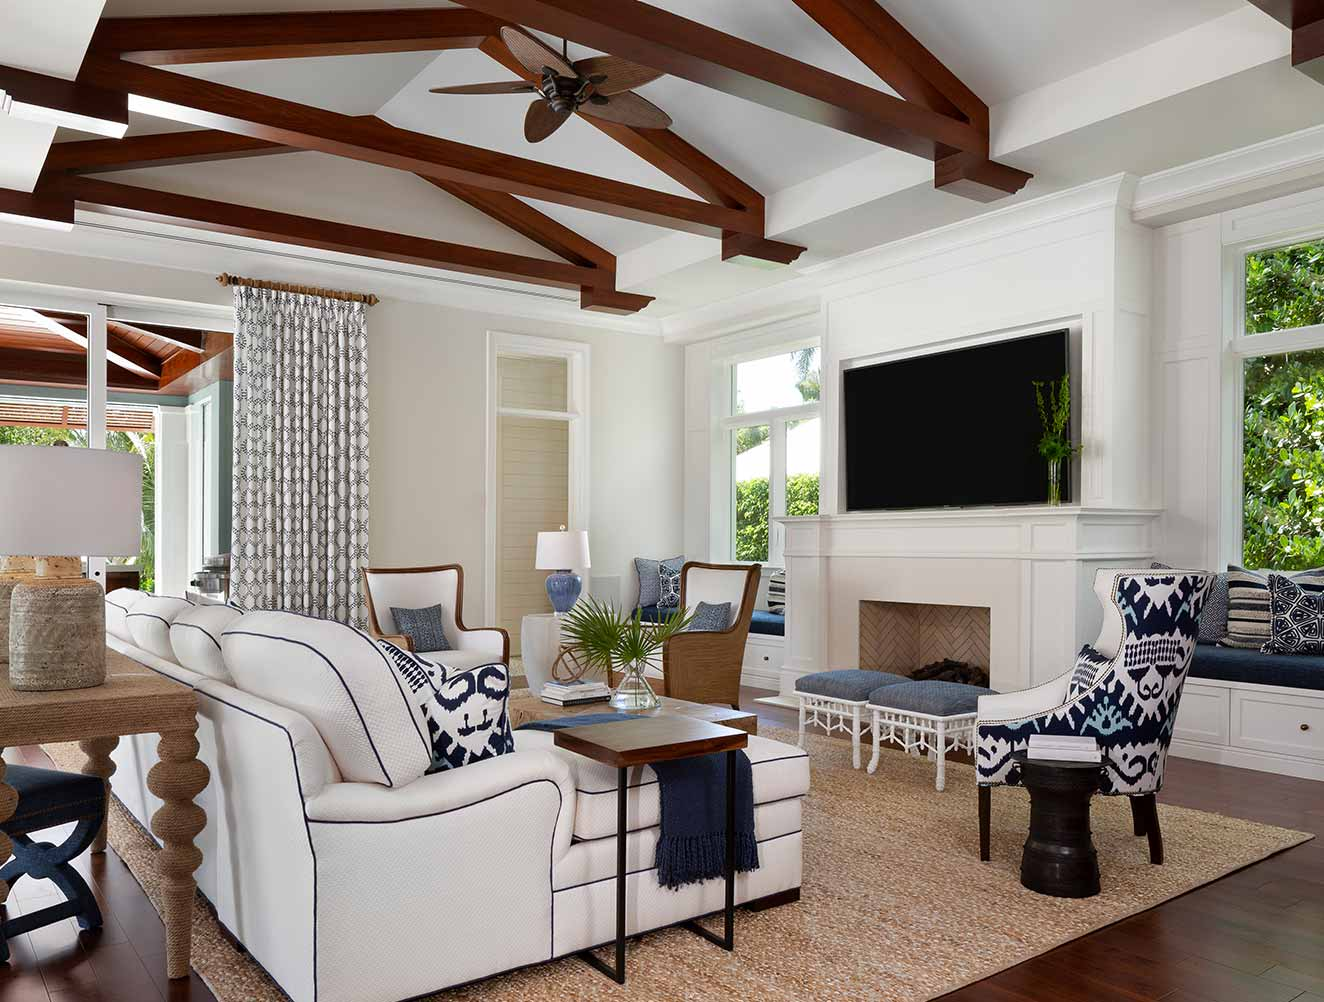 Family Room at West Indies Residence in Naples Florida, single family home designed by Kukk Architecture & Design Naples Architecture Firm